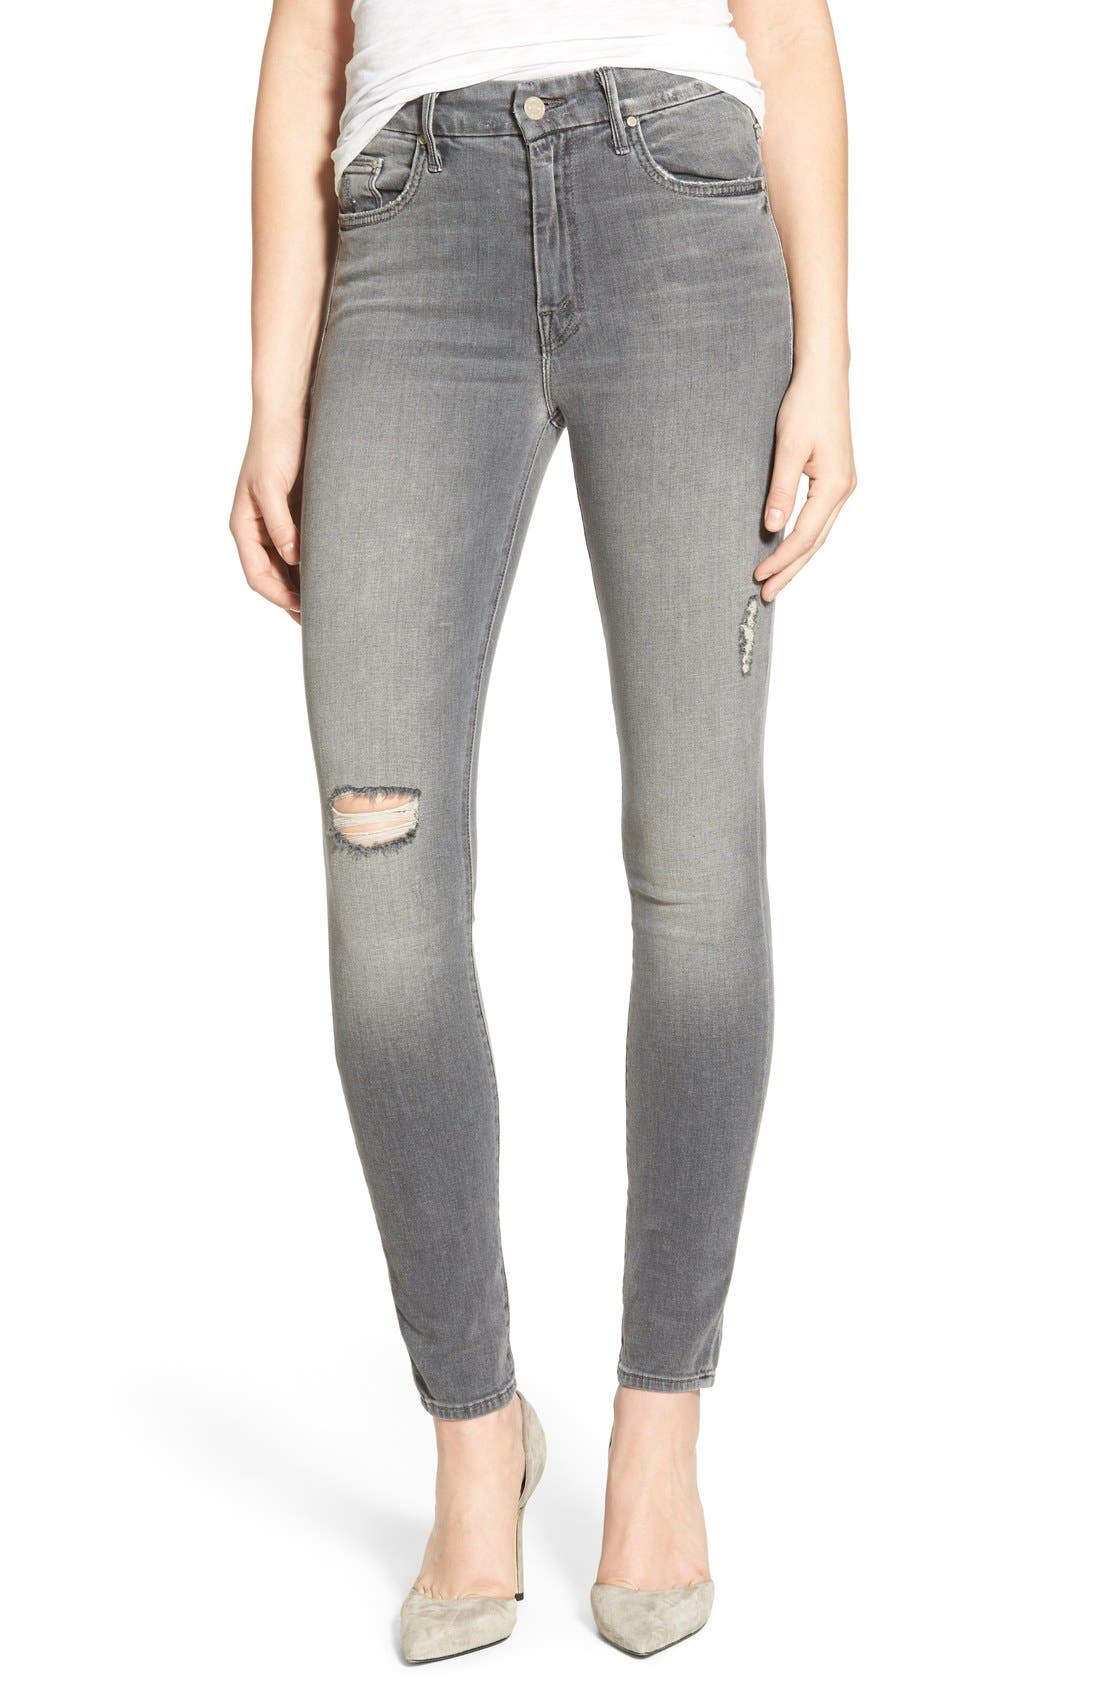 Main Image - MOTHER 'The Looker' High Rise Skinny Jeans (To the Moon and Back Again)